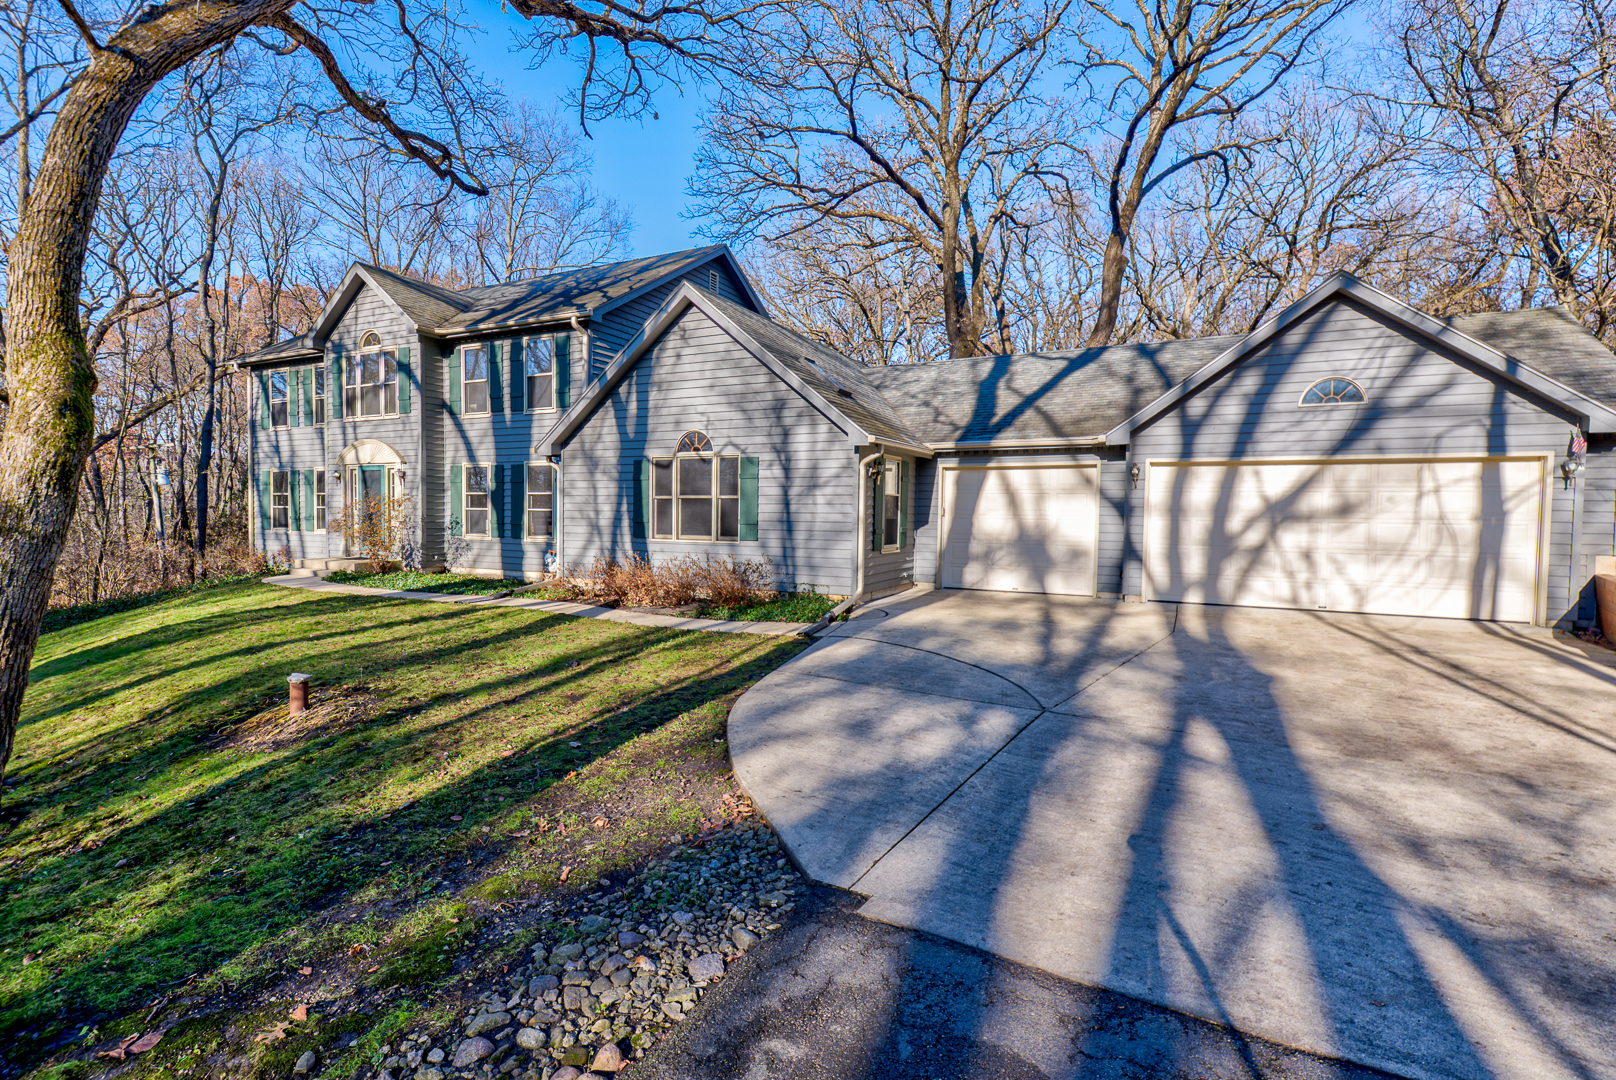 Photo for 6N433 Old Homestead Road, St. Charles, IL 60175 (MLS # 10582245)